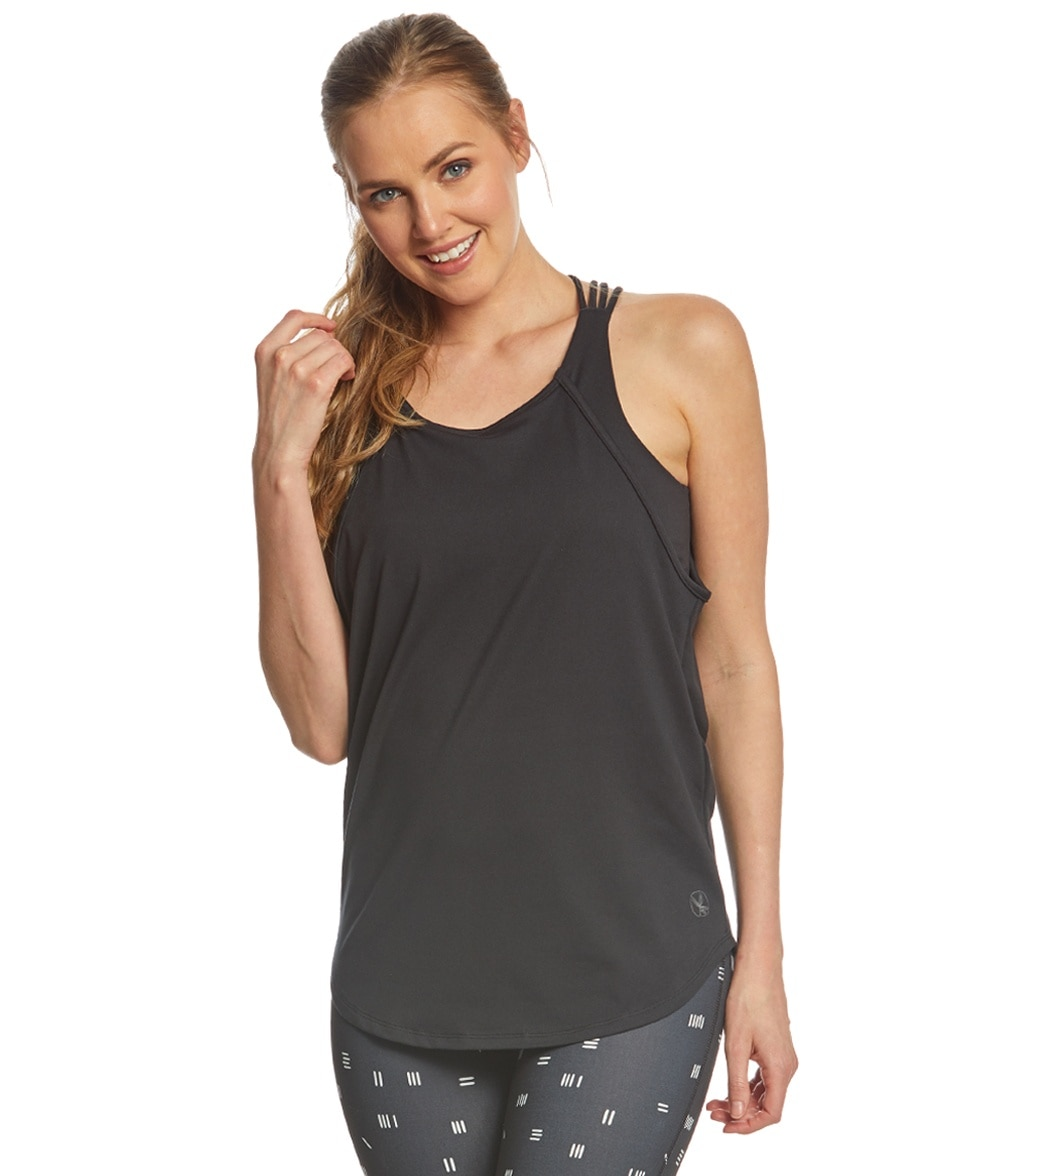 b744c66f667cb Carve Designs Women s Airlia Sleeveless Tank Top at SwimOutlet.com ...